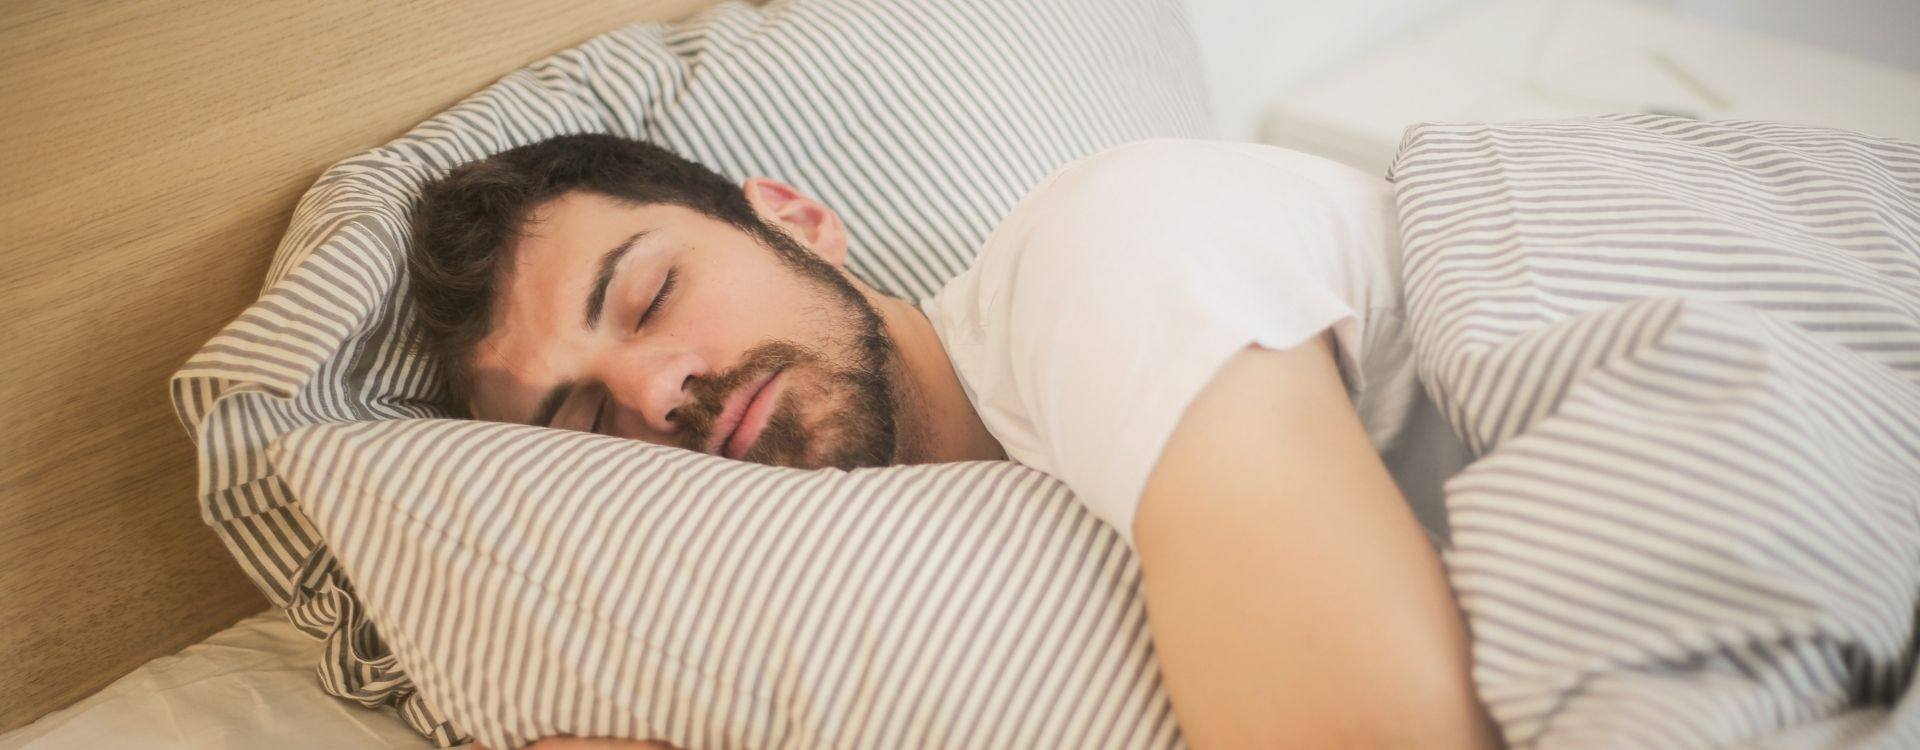 CBD Dosage for Sleep: 3 Steps to Finding Your Optimal Dose